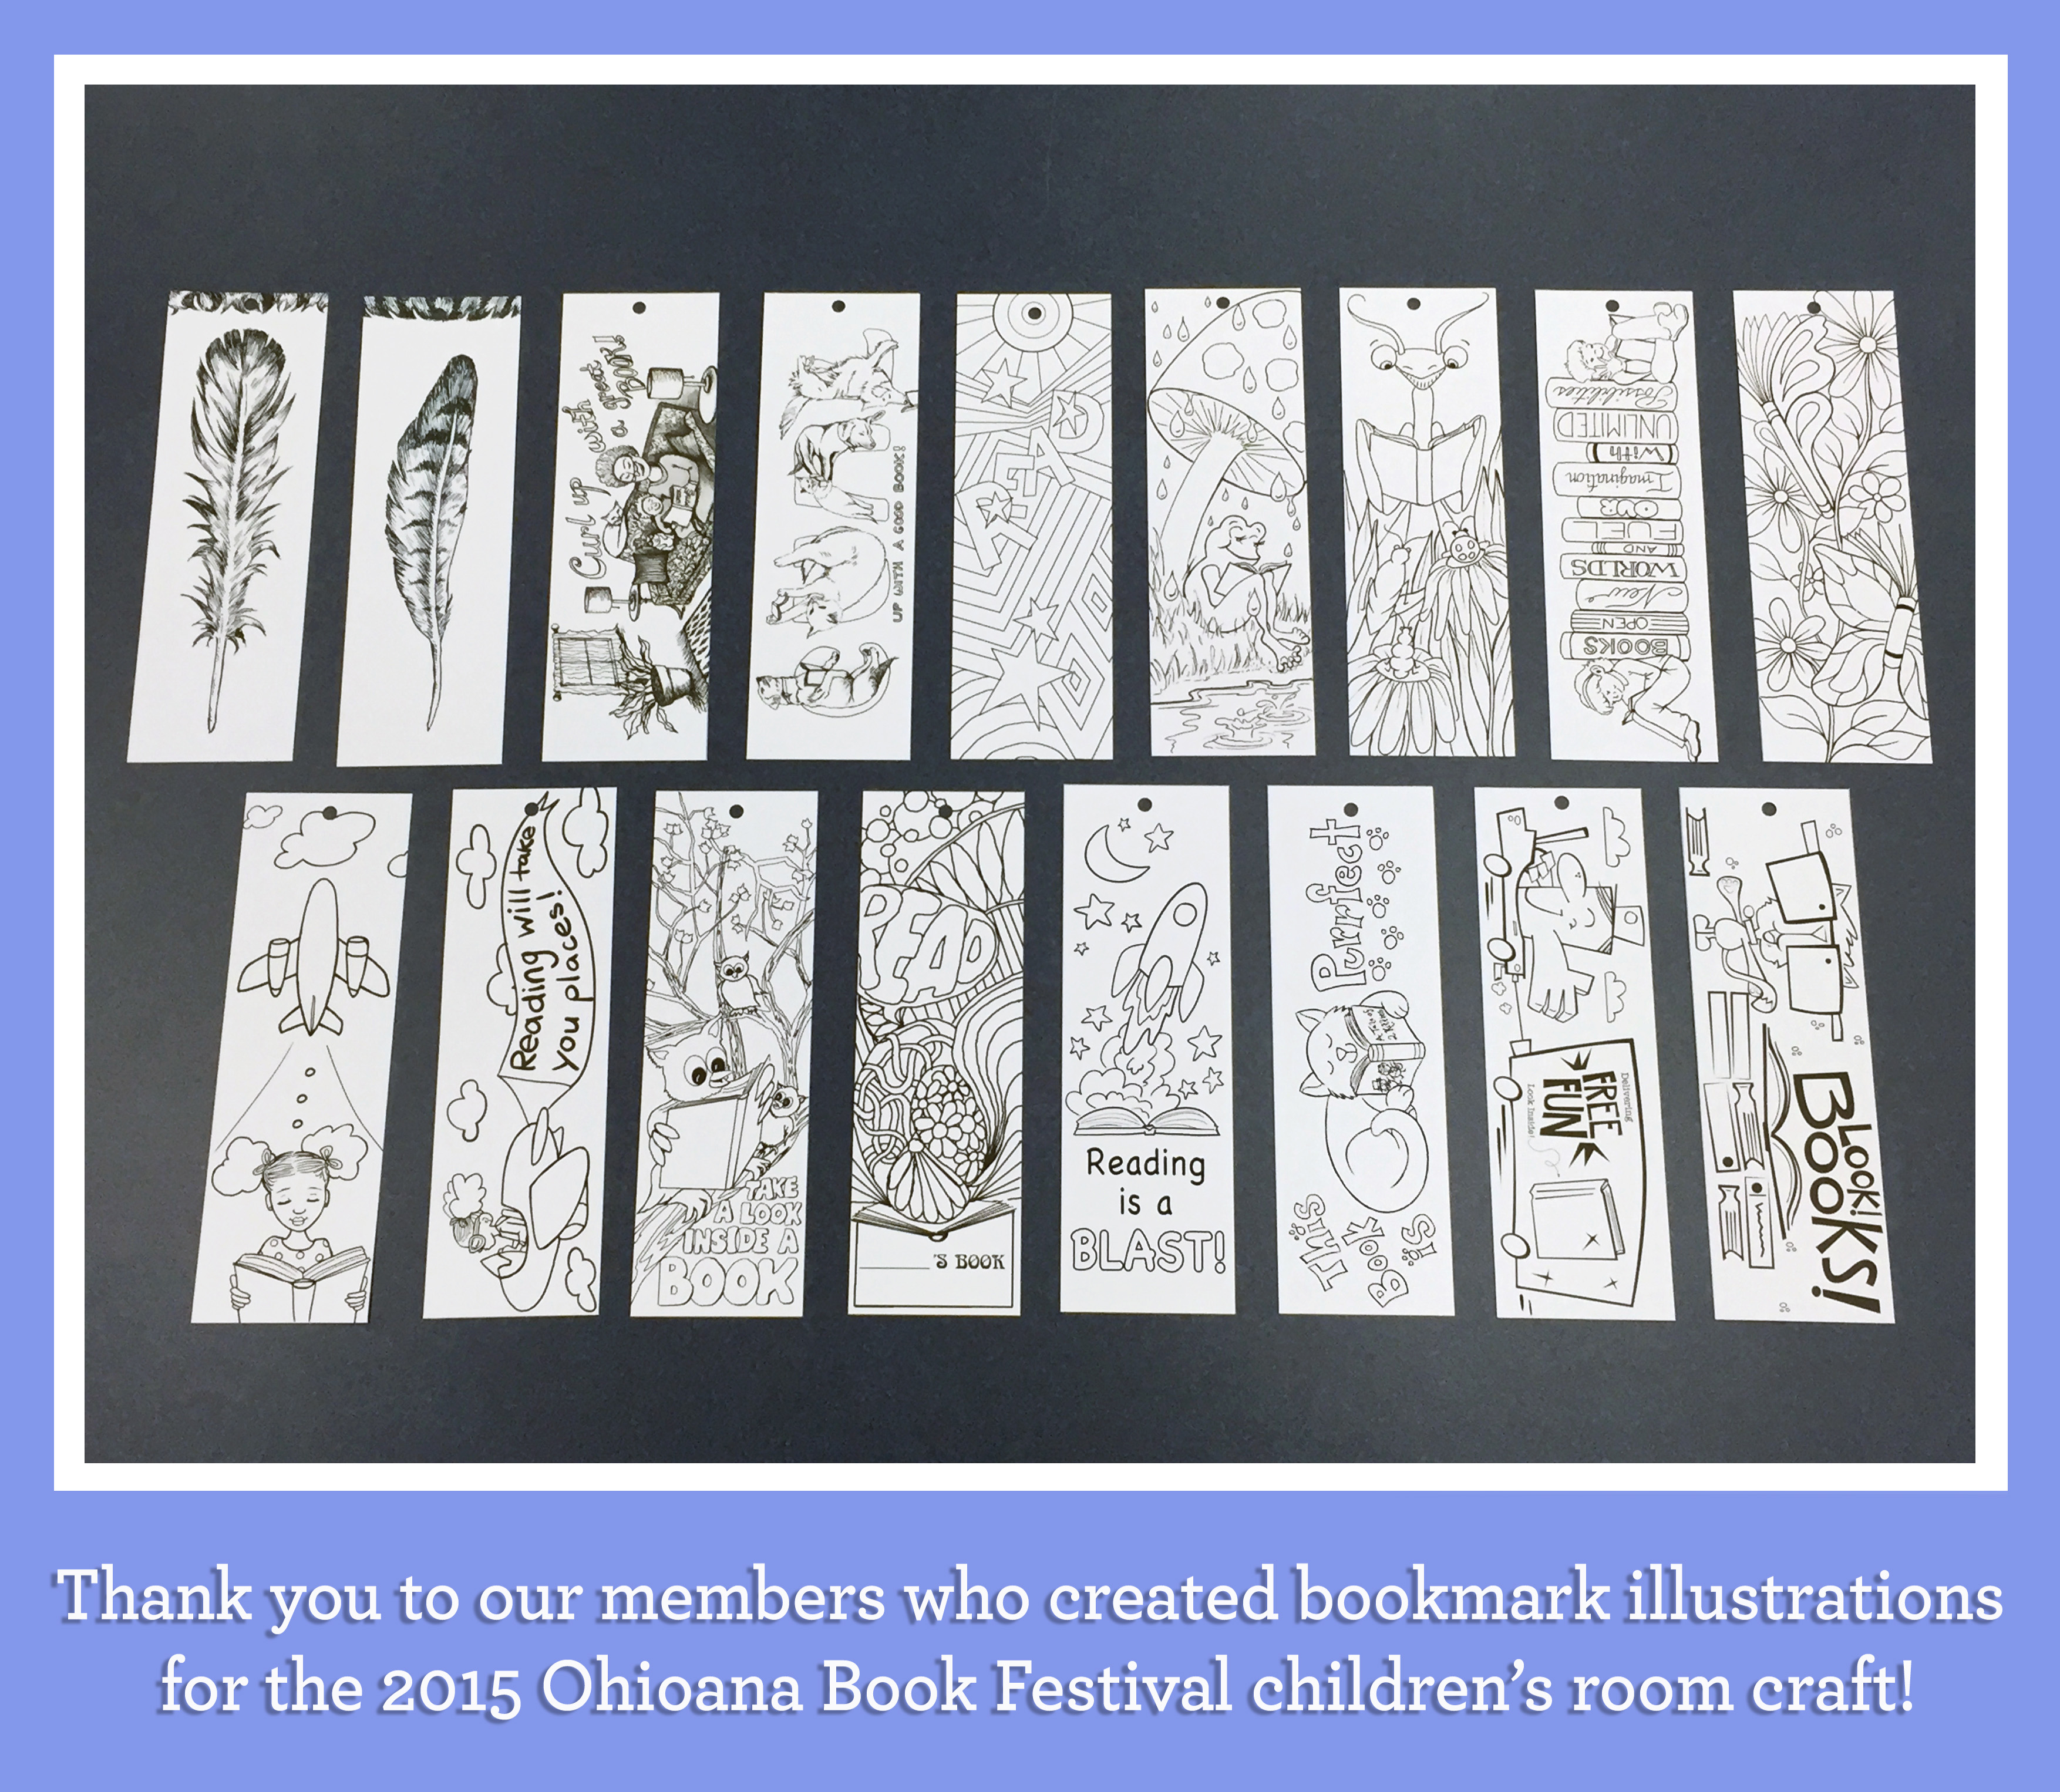 2015 Ohioana Book Festival Children's Room Bookmark Craft The kids at the festival had such a blast coloring these wonderful bookmarks! (please click on the image for full-screen view) Featuring illustrations by: Keturah Ariel• Elise McWilliams• Tracy Onoz• Susan Otten Kathryn Powers• Michaela Schuett• Ellen Wang